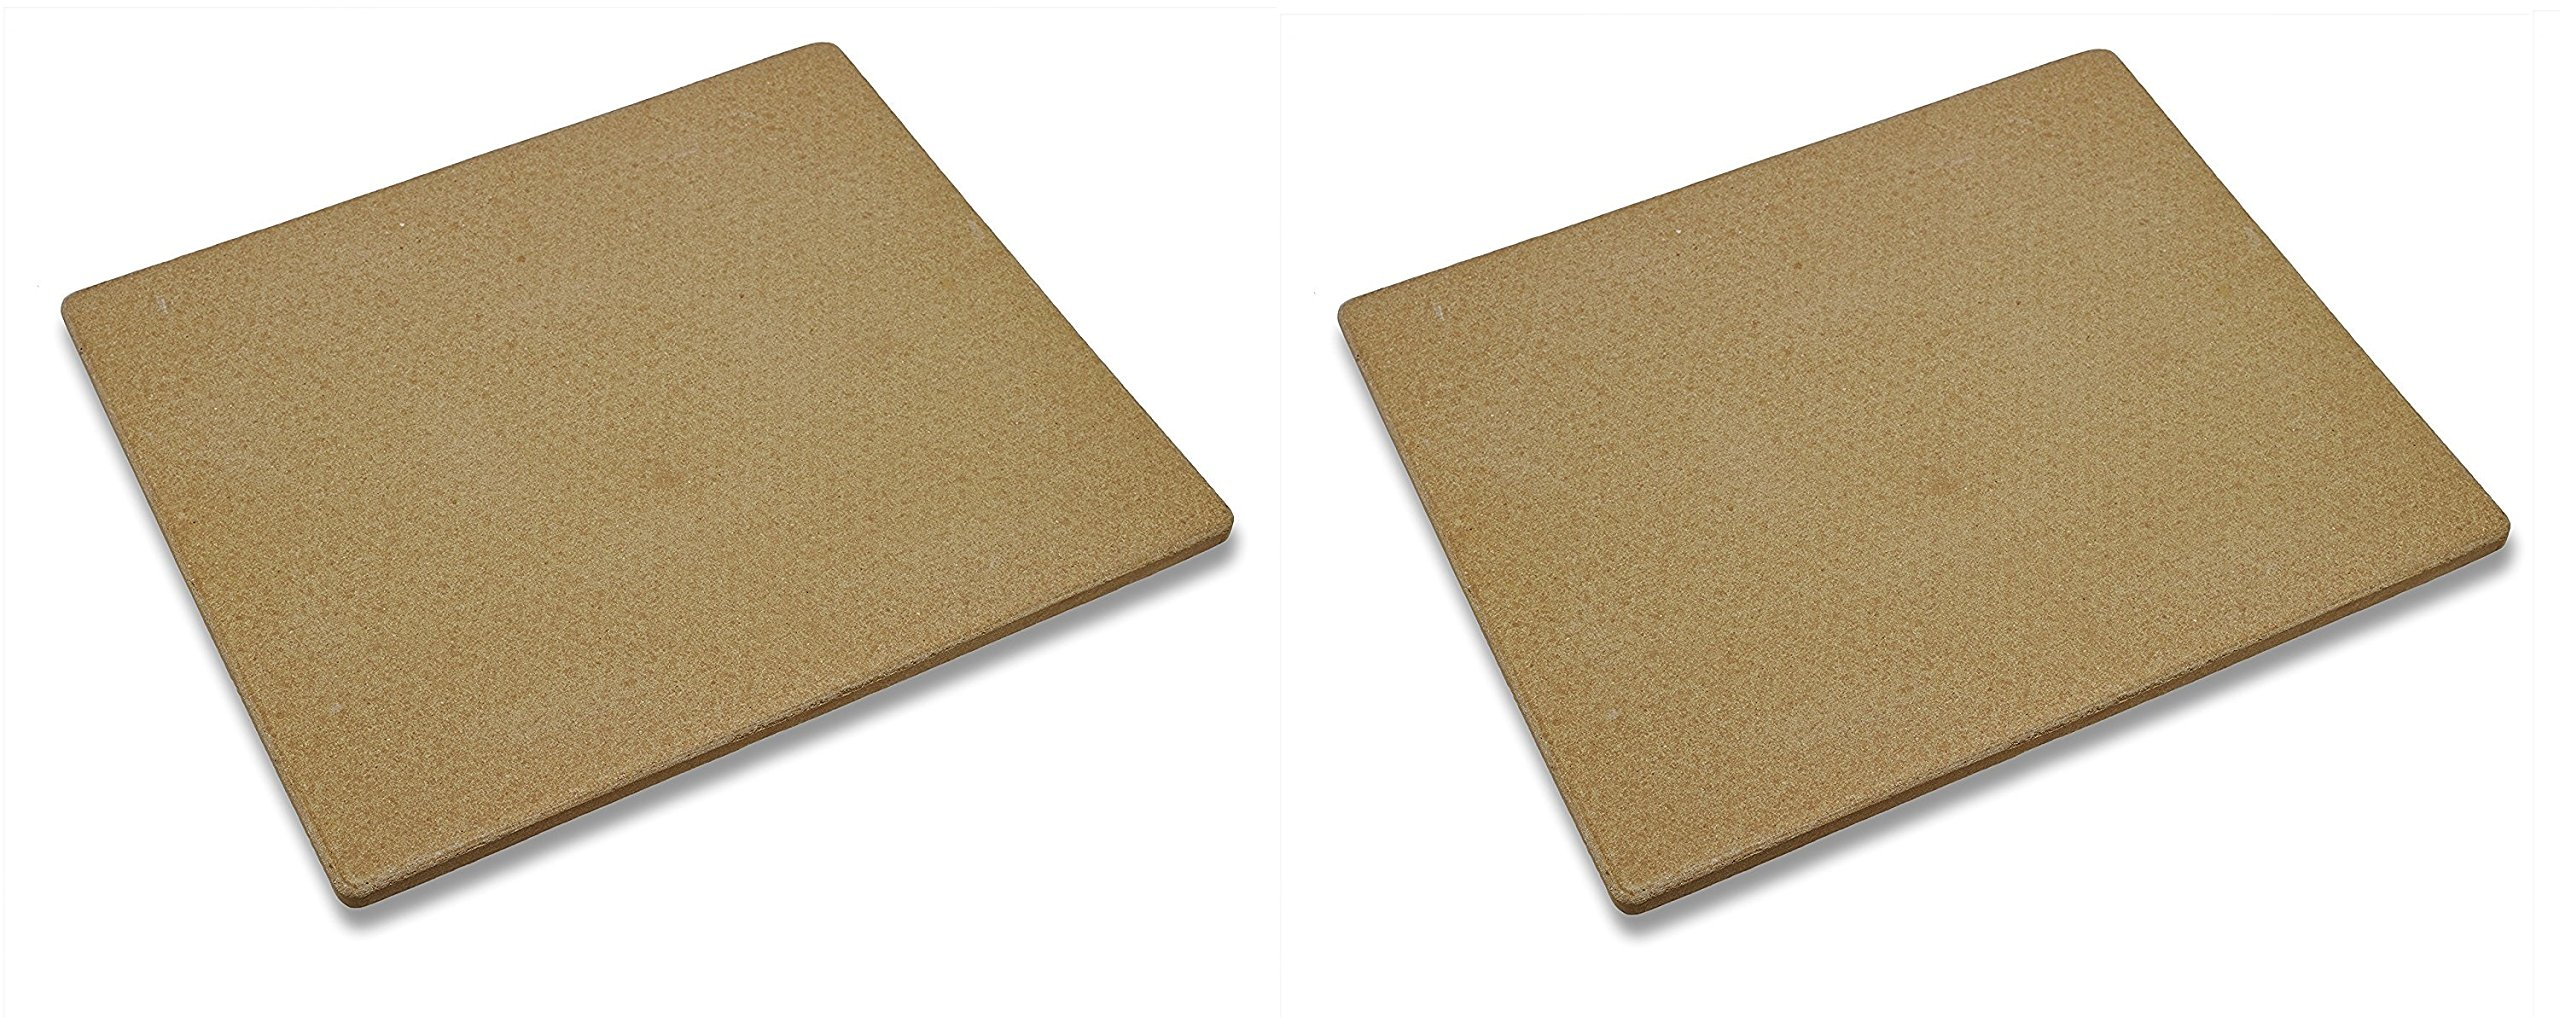 Old Stone Oven Rectangular Pizza Stone (Pack of 2)